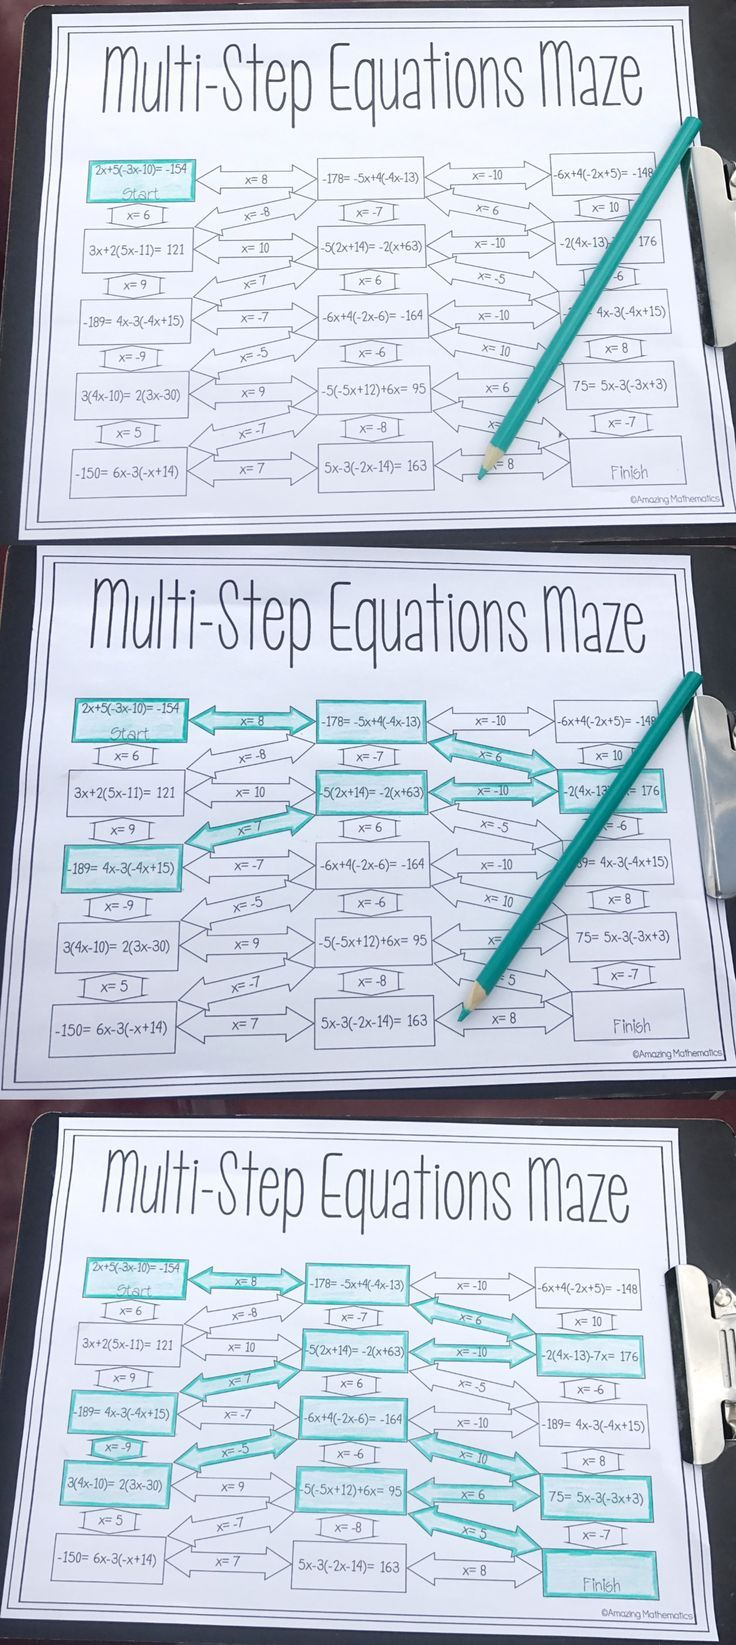 Solving MultiStep Equations Maze Worksheet High school